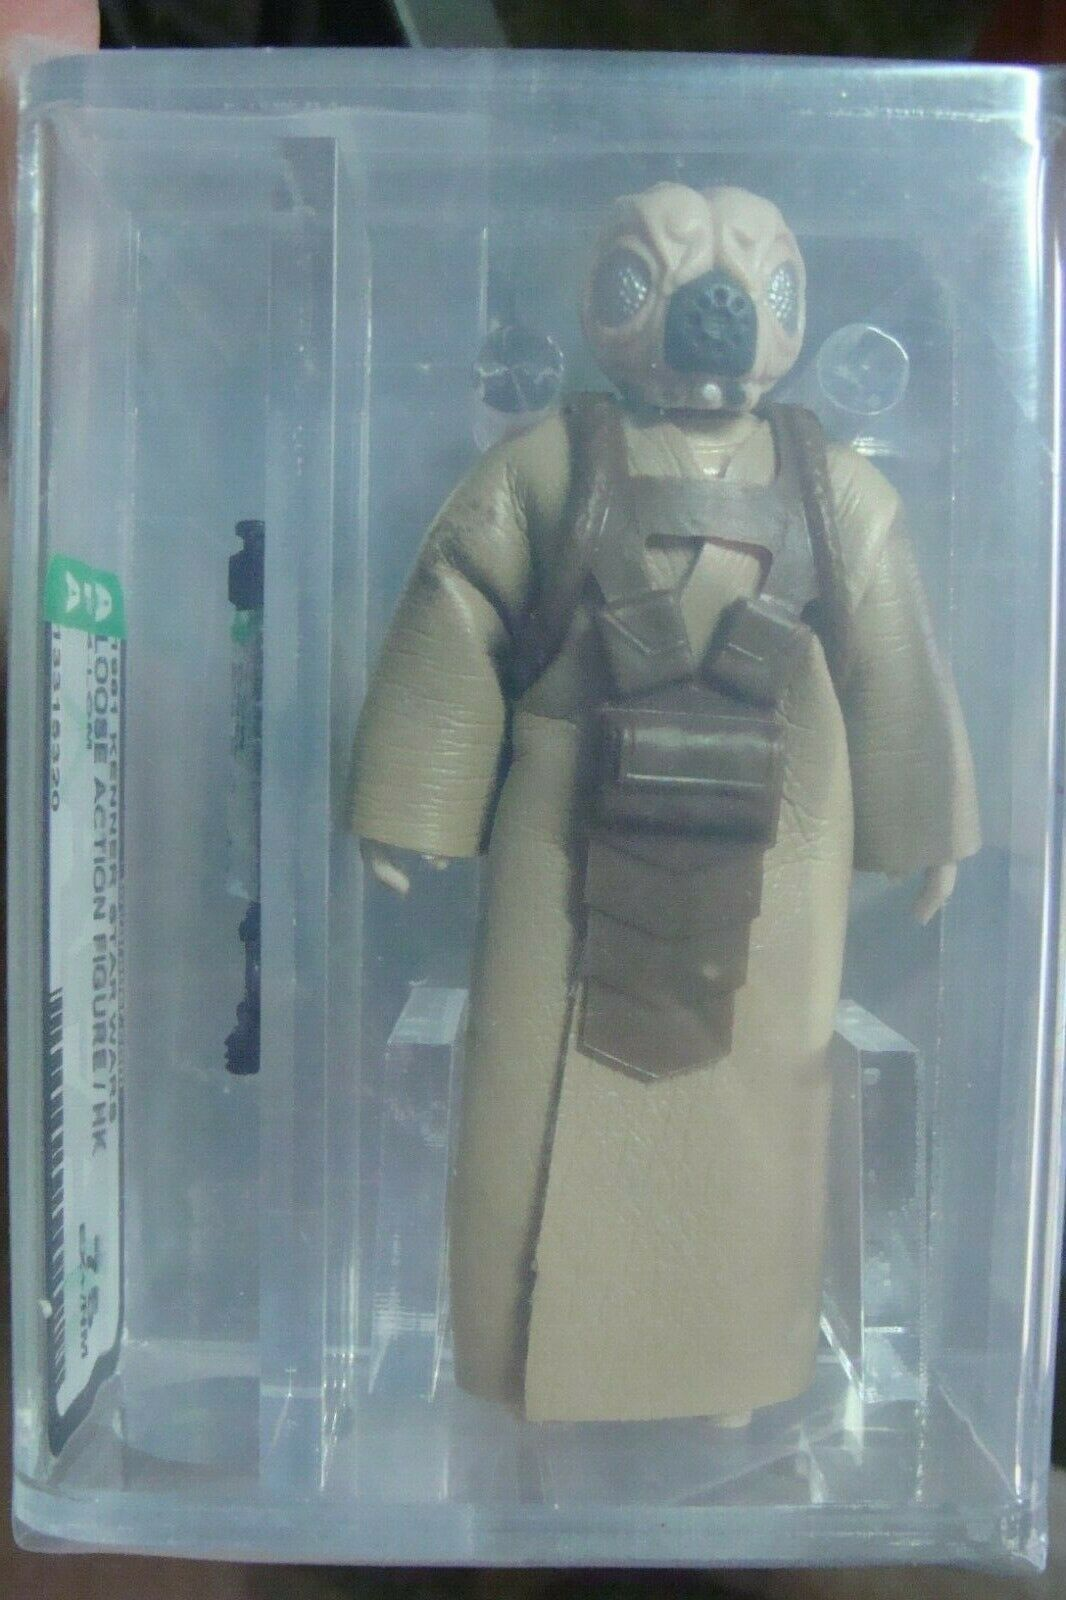 Star Wars AFA 75 4-LOM Return  of Jedi Action Figure 1981 Kenner HK LOOSE VINTAGE  garantie de crédit